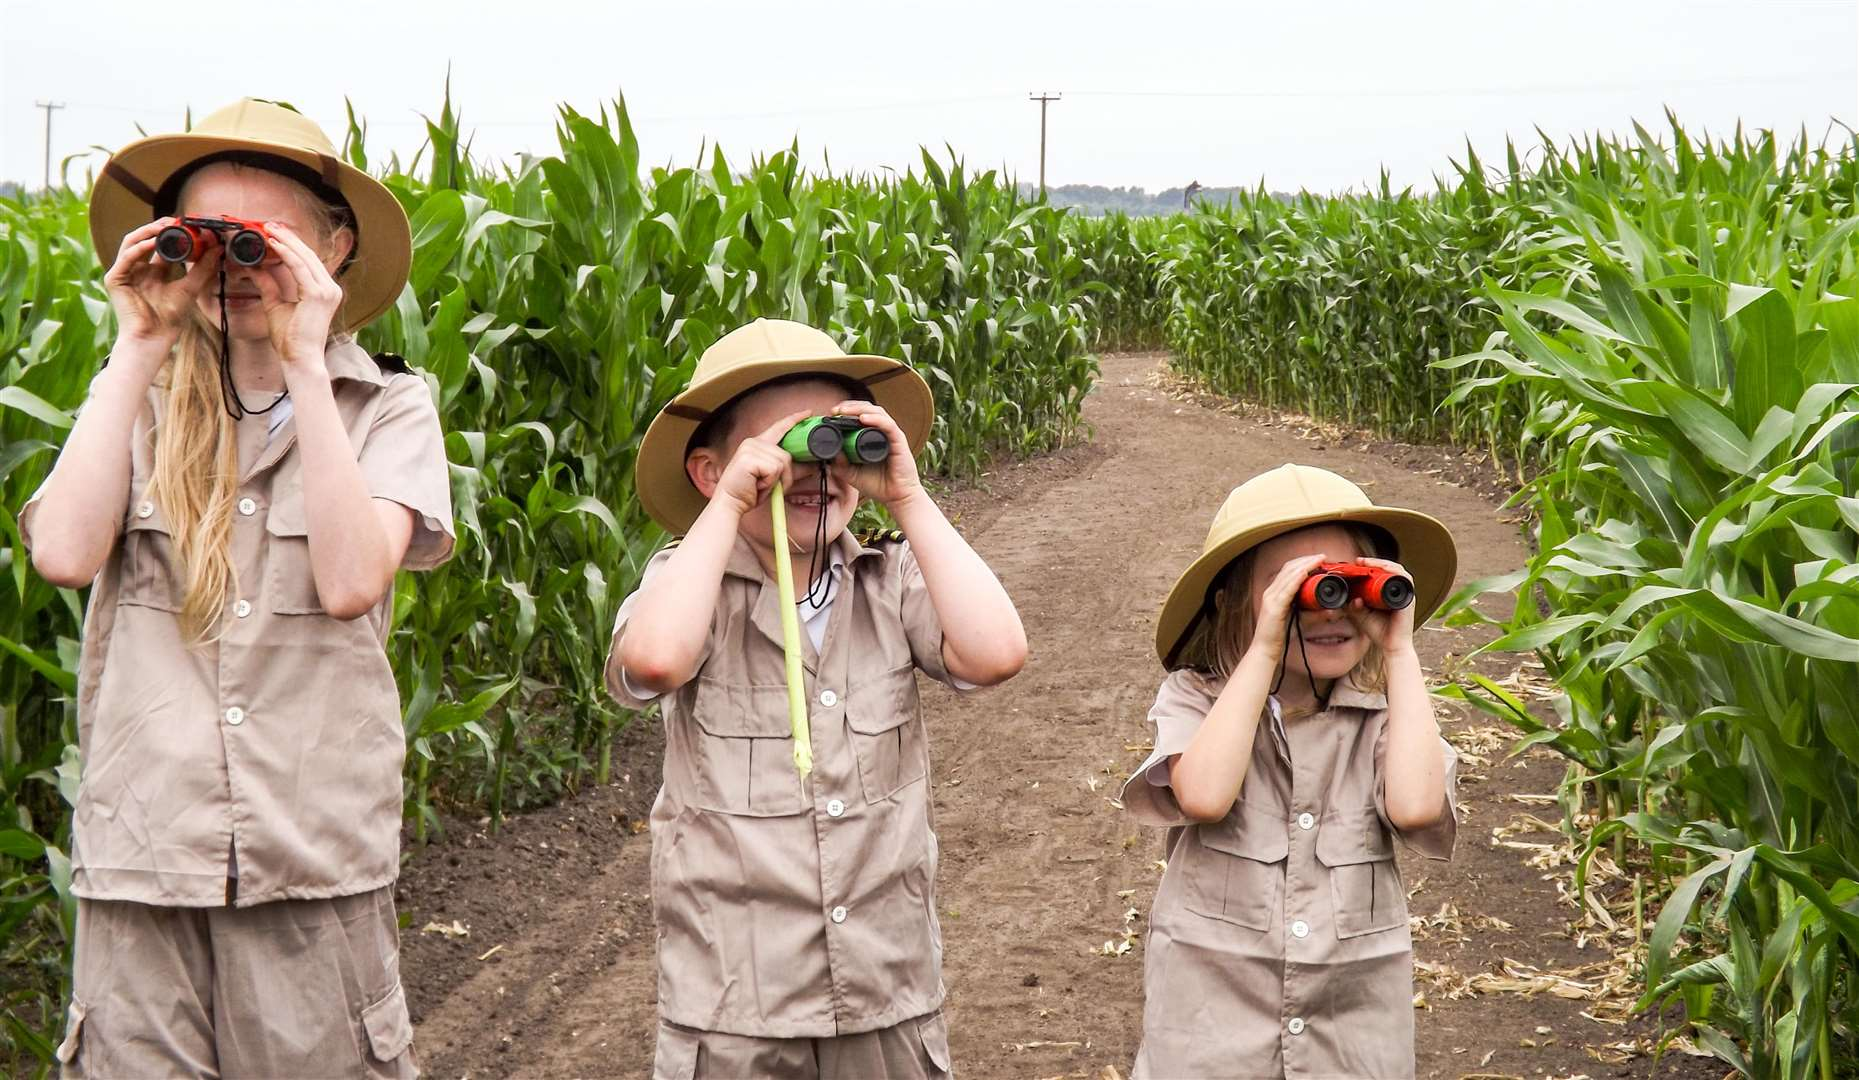 On the look out for dinosaurs in the Skylark maize maze: Annabell Wesley, 11, Owen Askew, 7 and Amelia Hathaway, 6. (3047058)